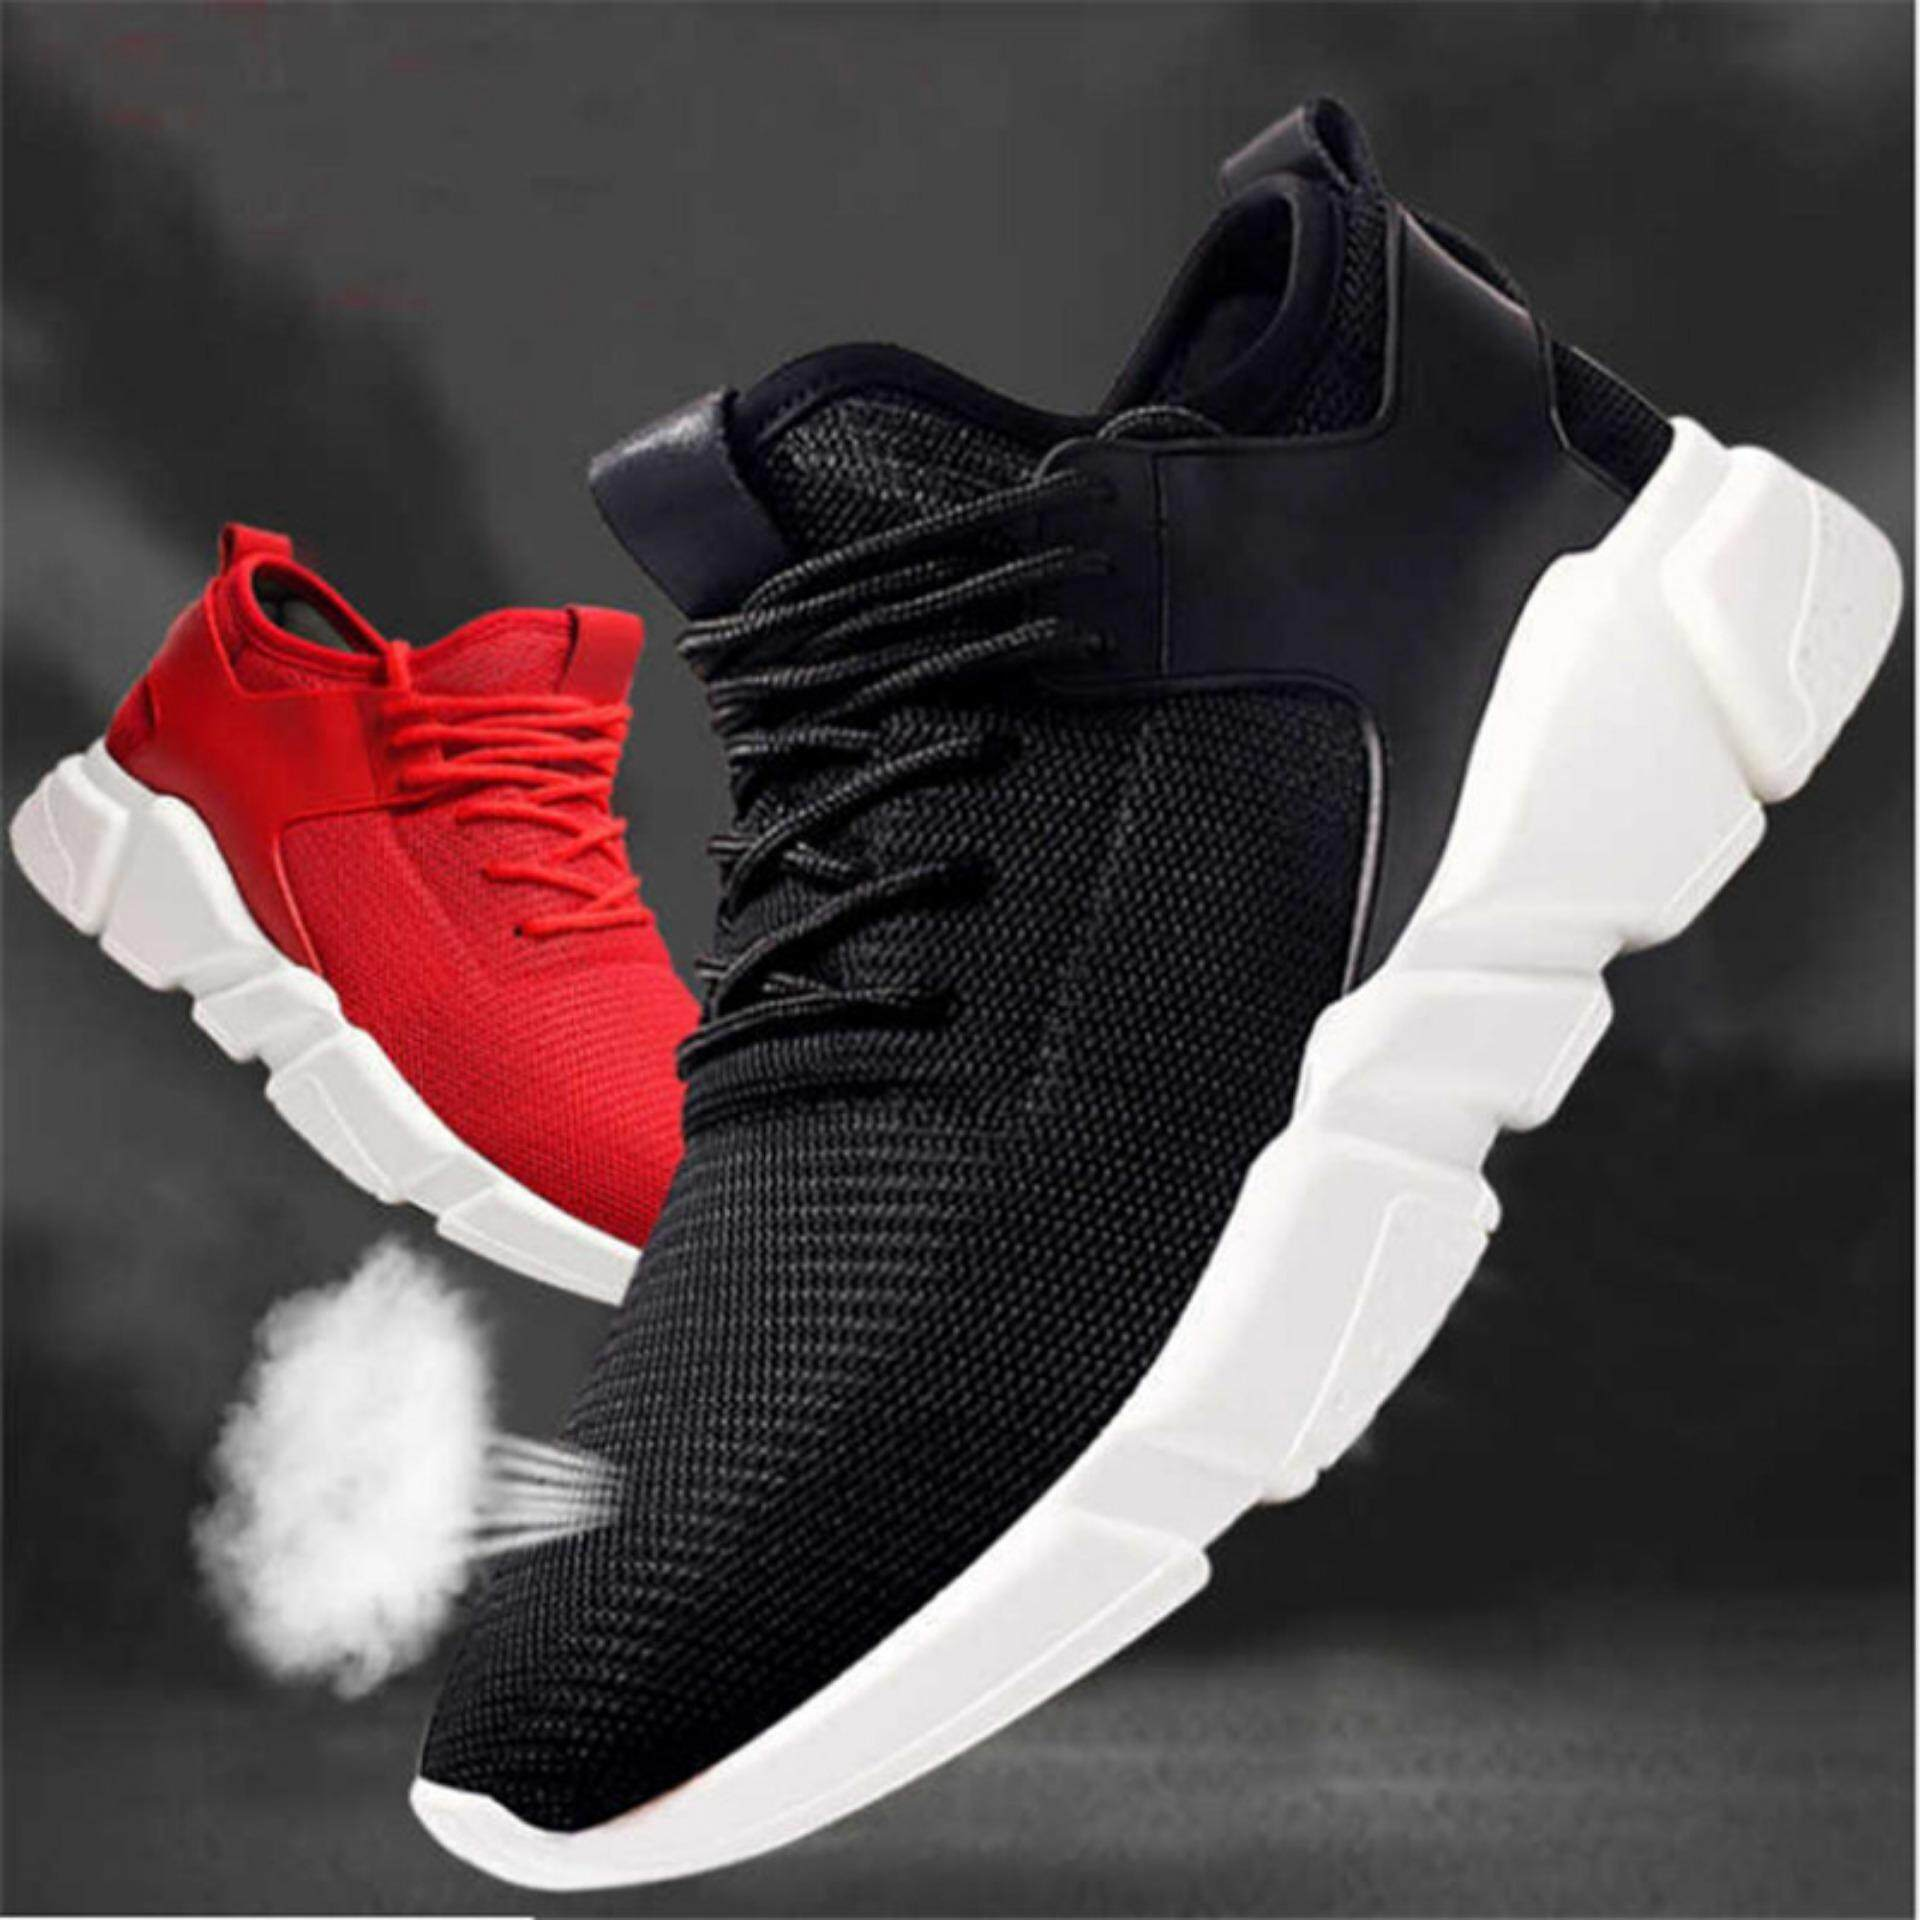 Mens Shoes For The Best Price In Malaysia Sepatu Sneakers Pria Rc121 Breathable Casual Sports Athletic Running Black 40